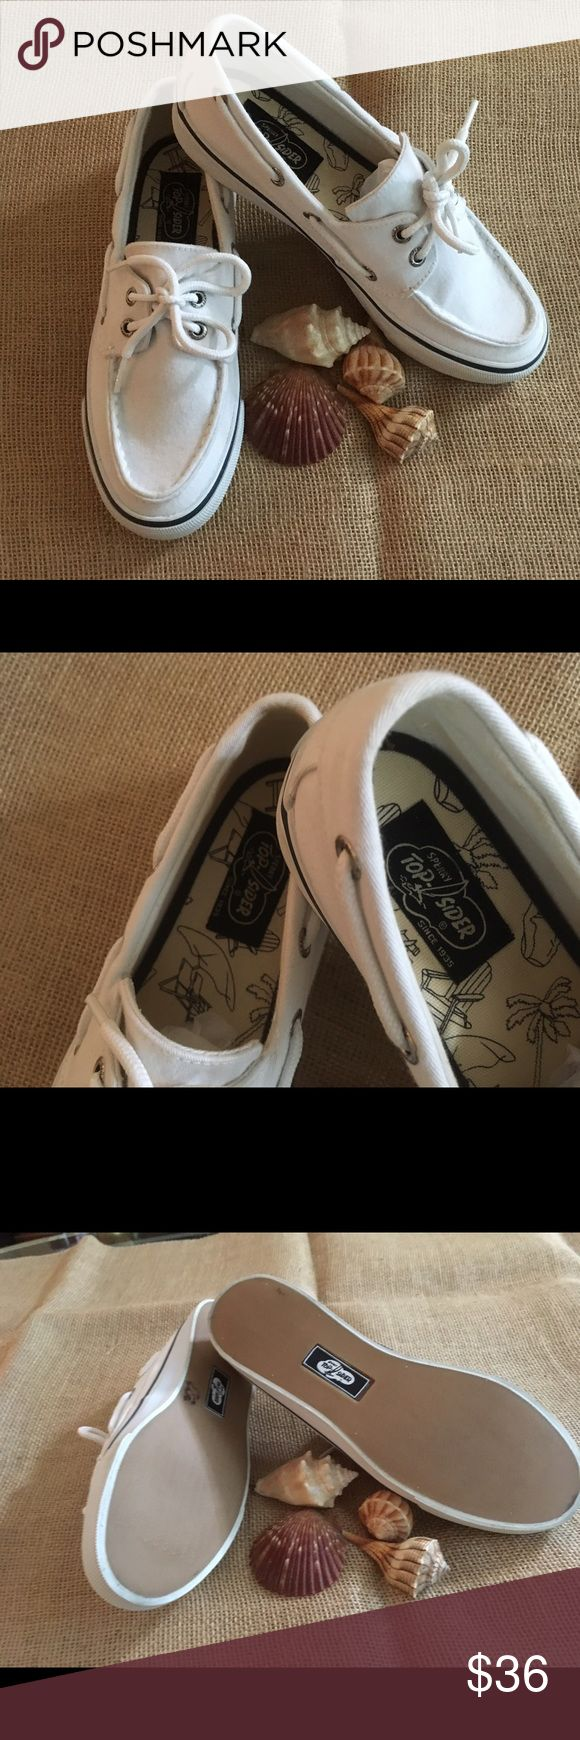 White SPEERY Top-Sider 7 Like new, super clean white Sperrys! Size 7 Sperry Top-Sider Shoes